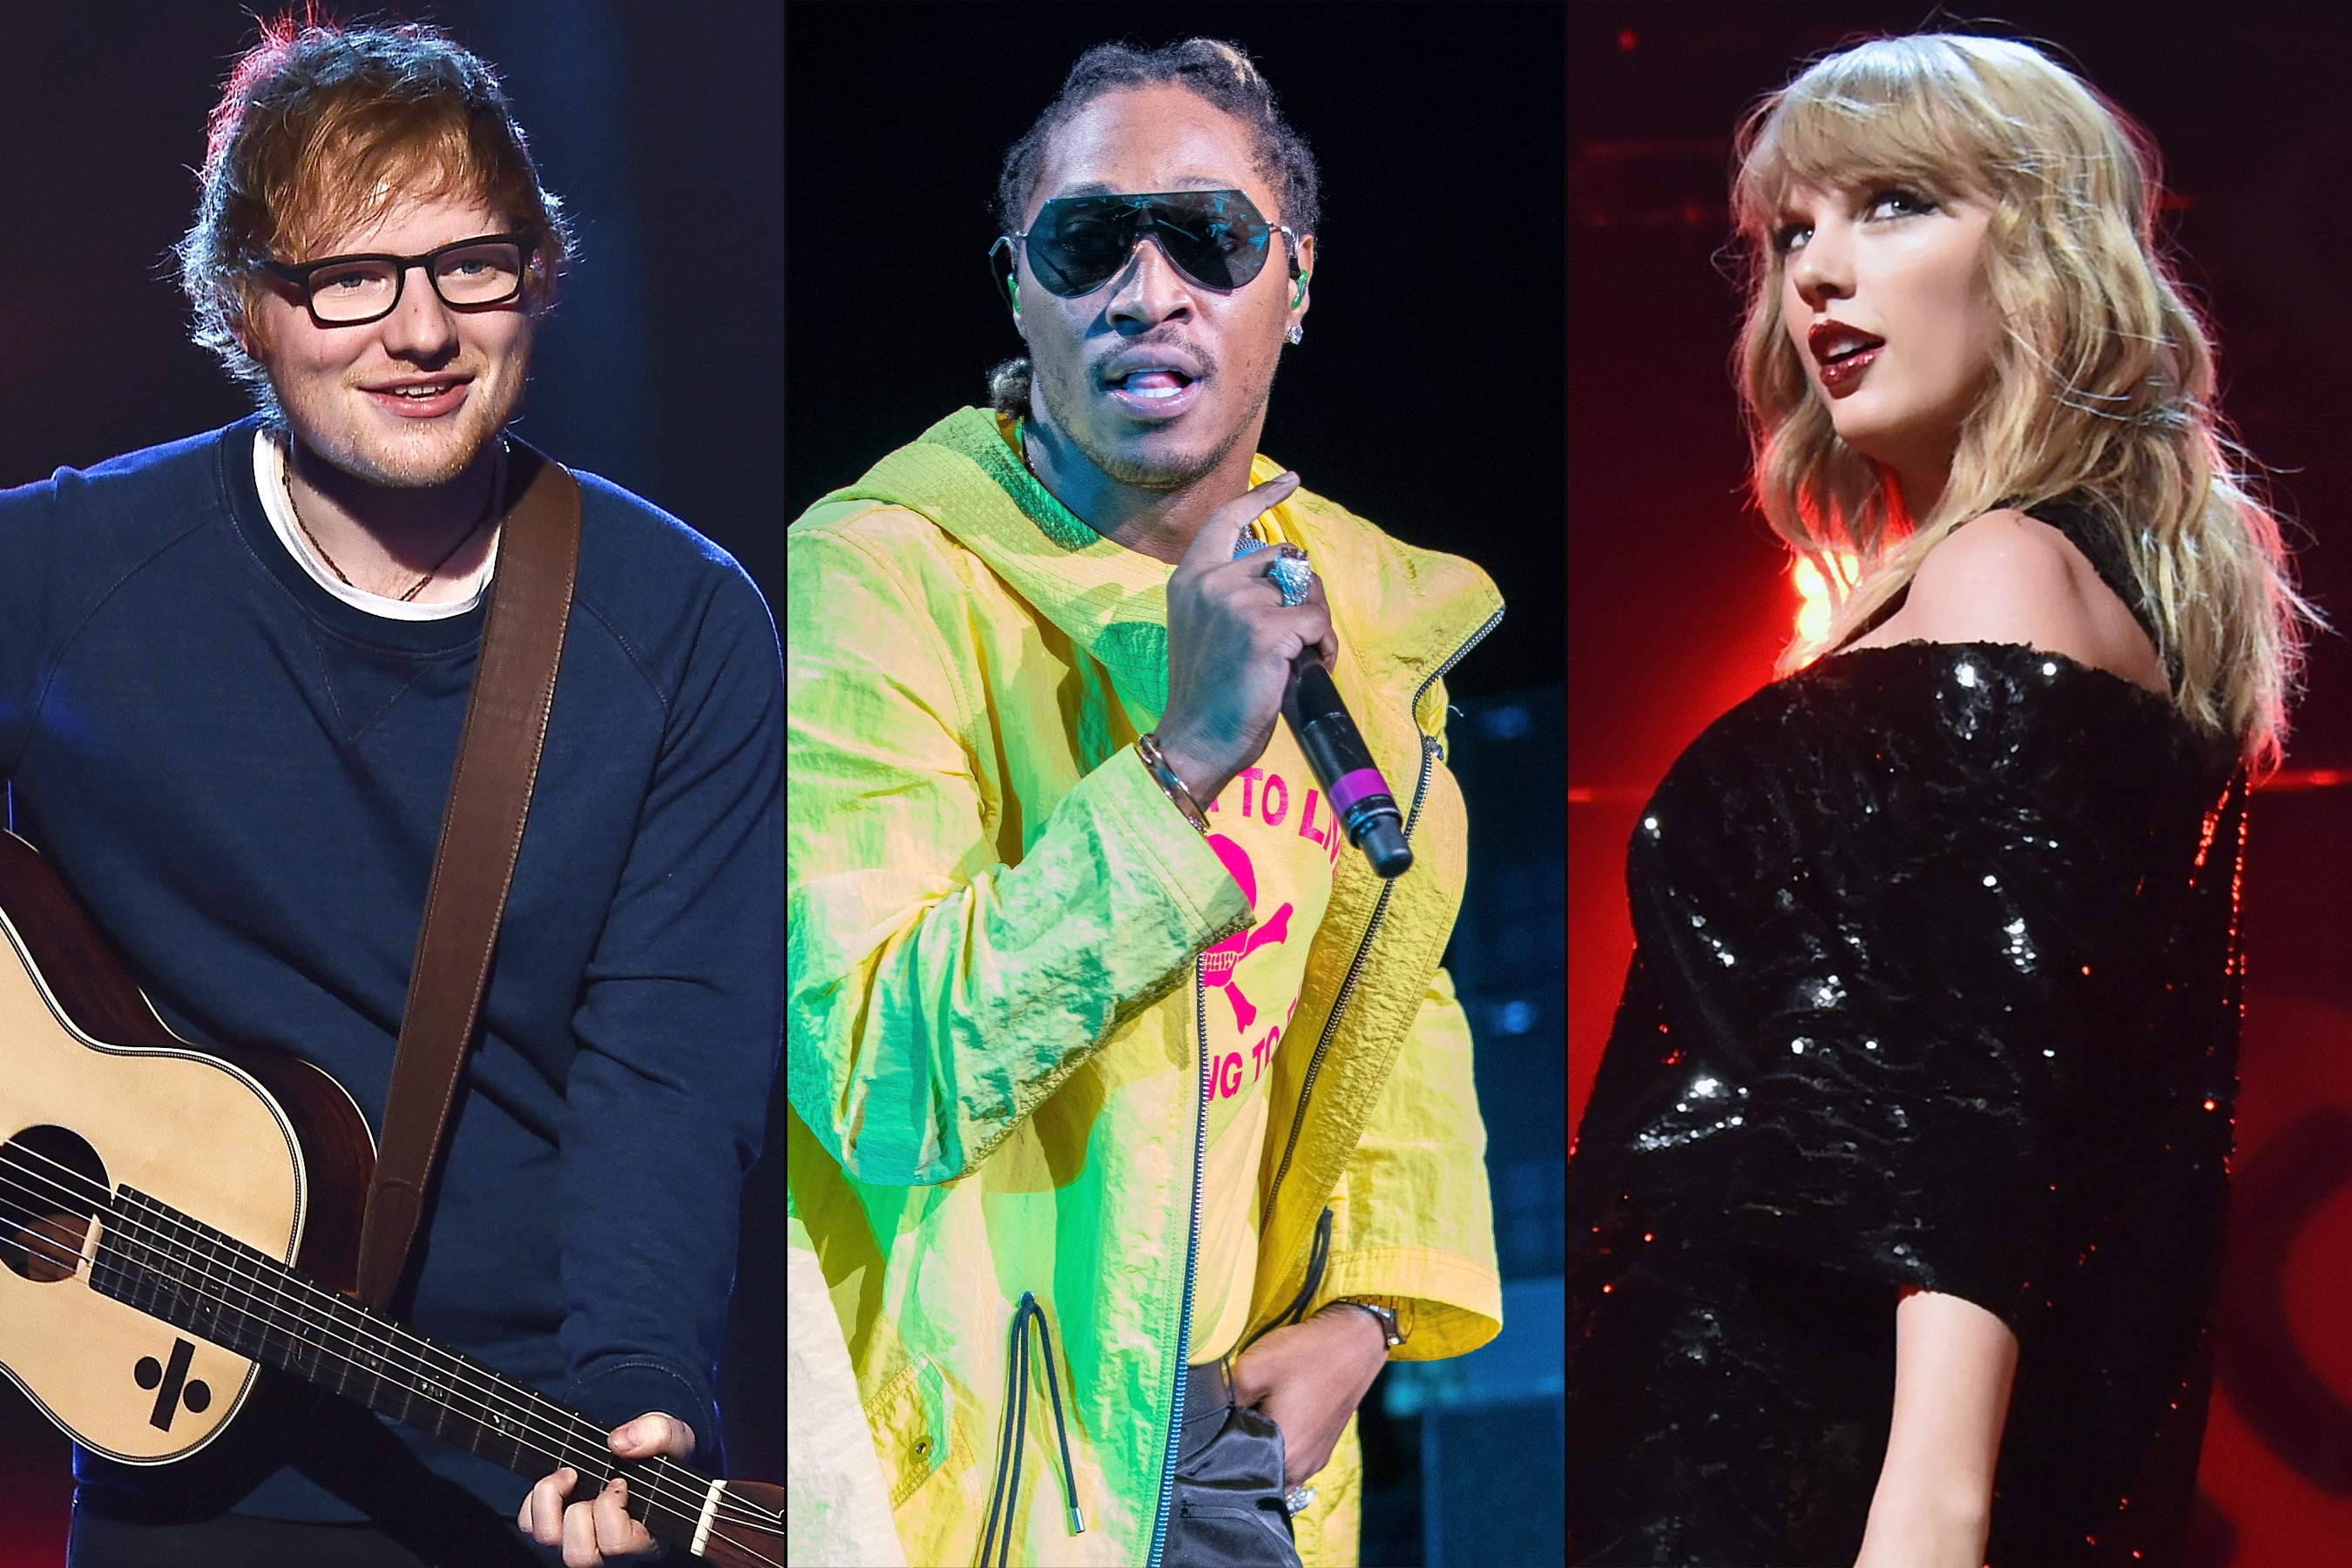 Taylor Swift, Ed Sheeran, Future release 'End Game' video teaser